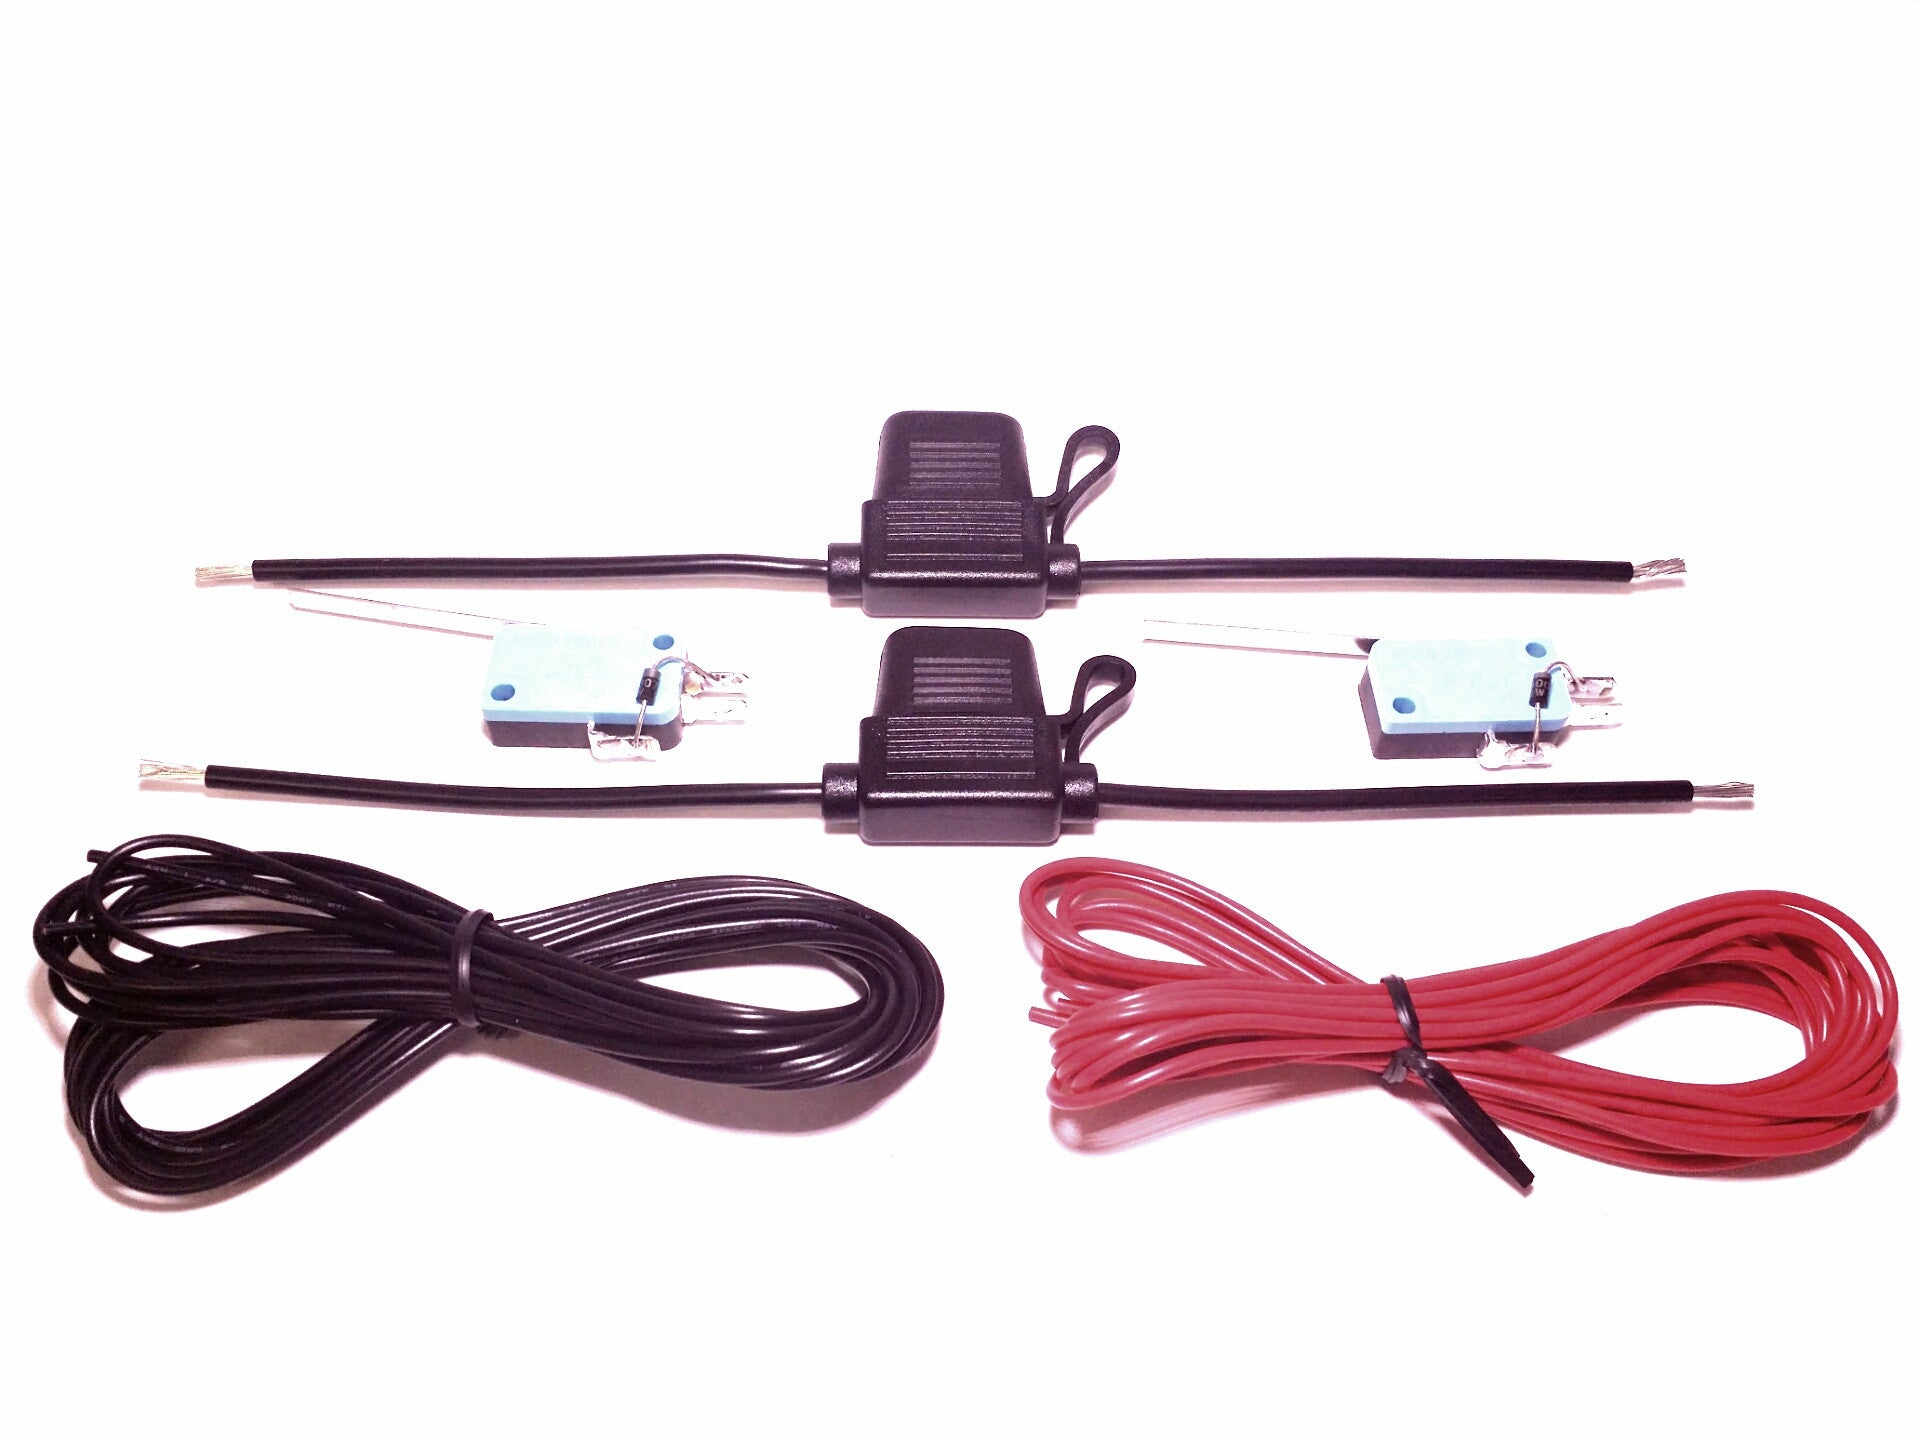 External Limit Switch Kit For Actuators Firgelli Single Pole Double Throw Wiring Diagram Linear Actuator